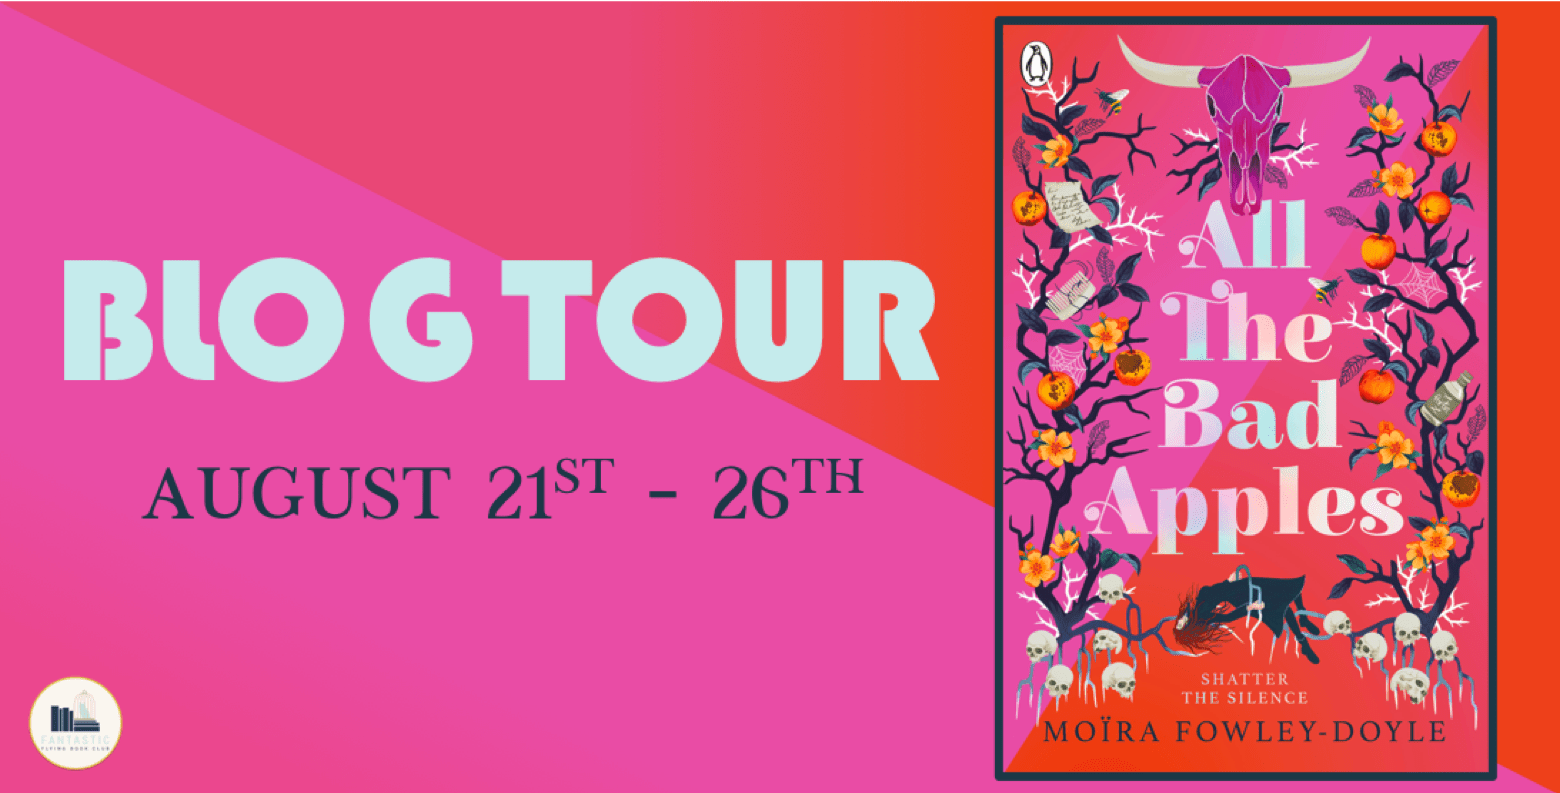 Blog Tour: All the Bad Apples by Moïra Fowley-Doyle (Interview+ Giveaway!)